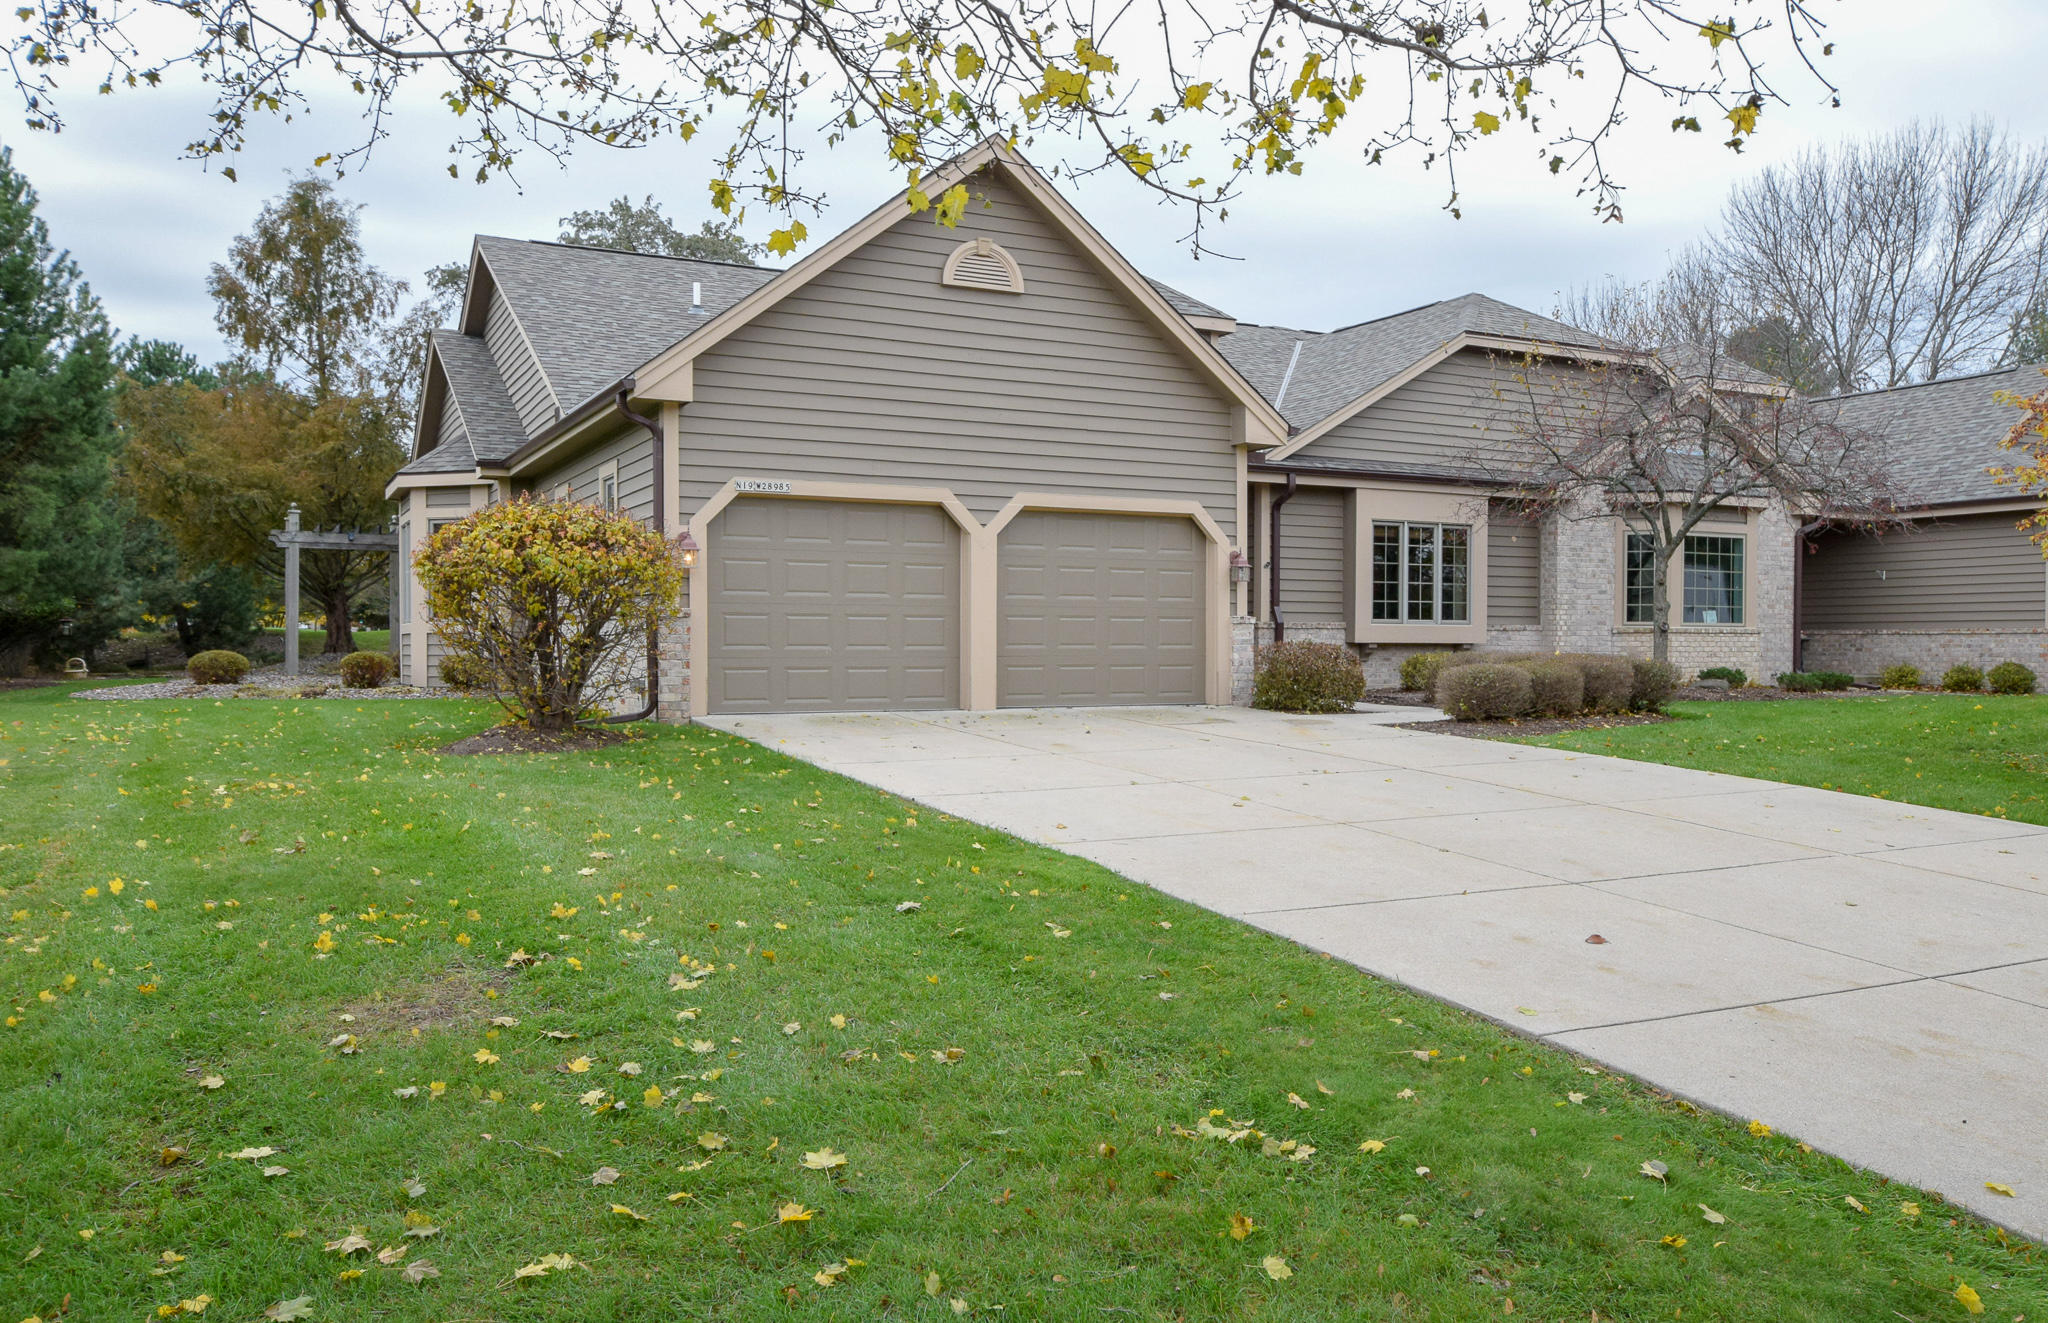 N19W28985 Golf Rdg N, Delafield, Wisconsin 53072, 3 Bedrooms Bedrooms, 7 Rooms Rooms,3 BathroomsBathrooms,Condominiums,For Sale,Golf Rdg N,1,1613406